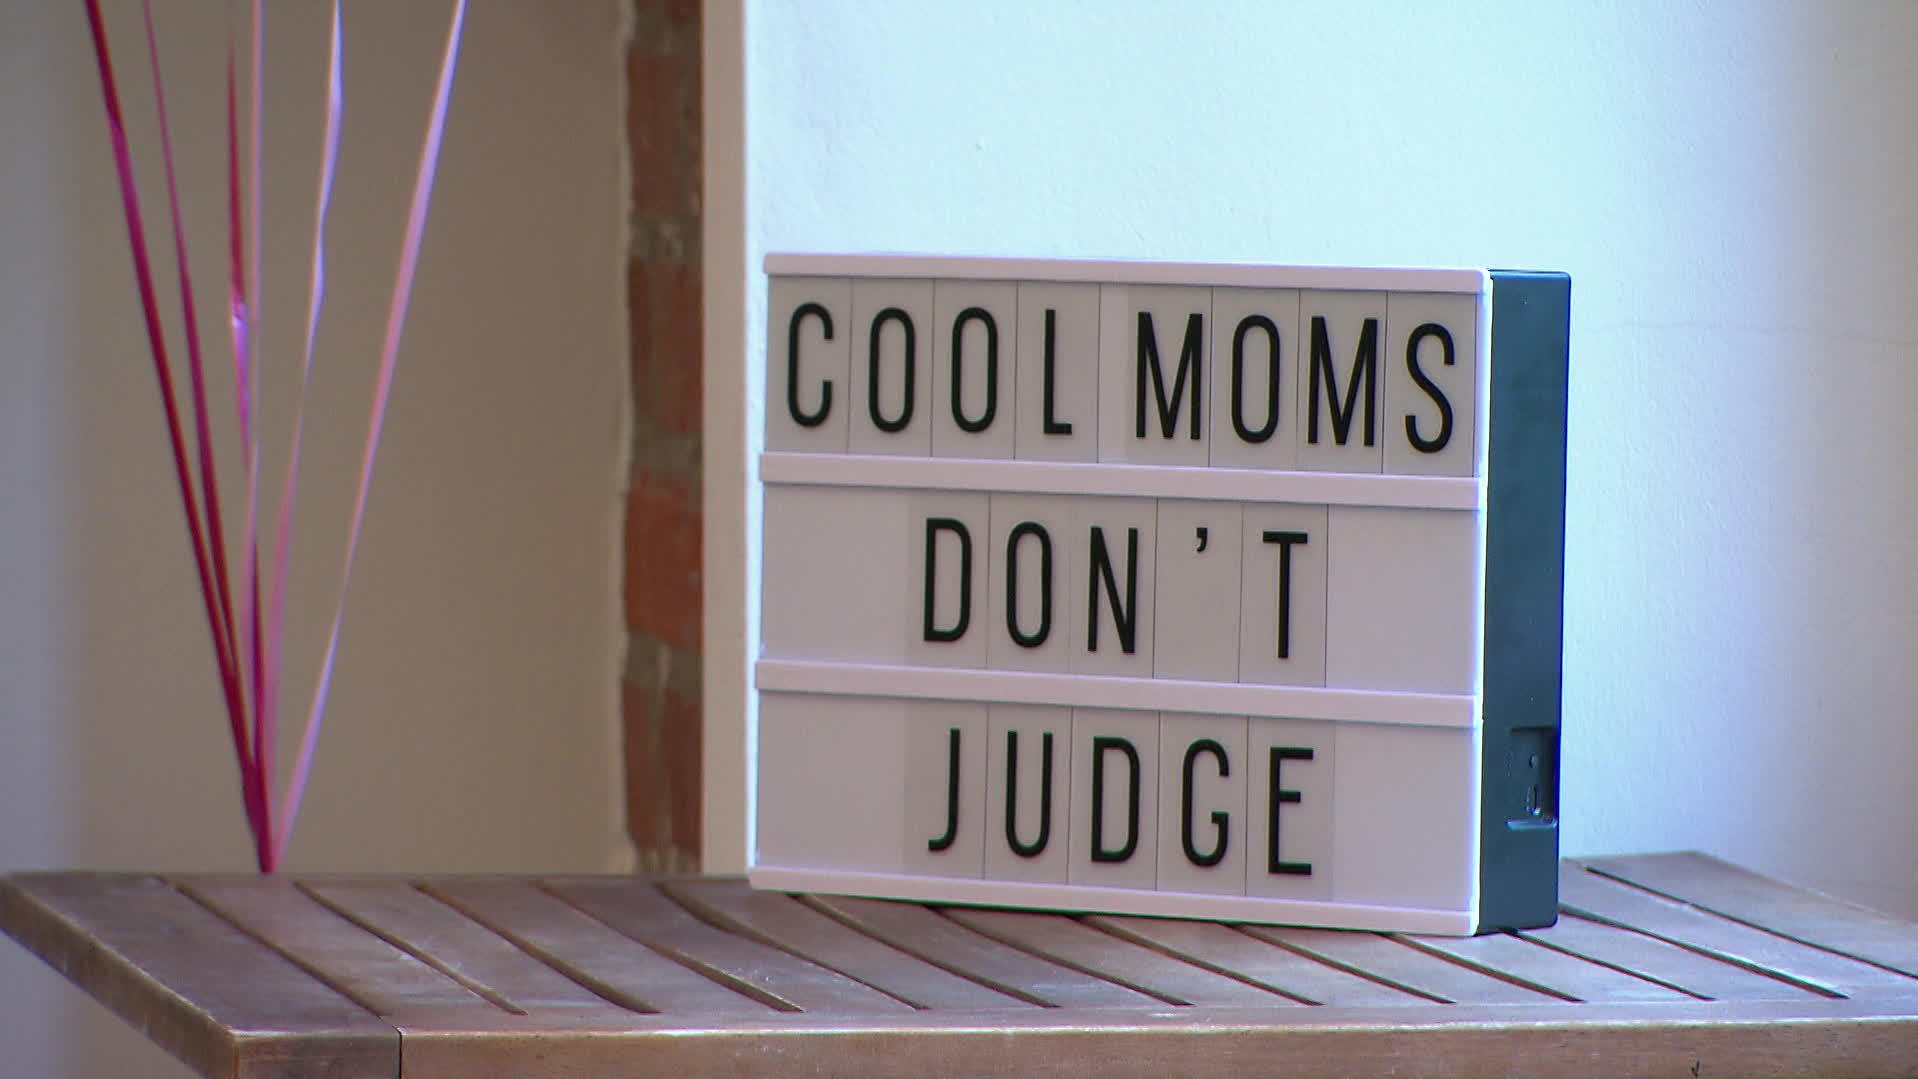 Cool Mums Don't Judge